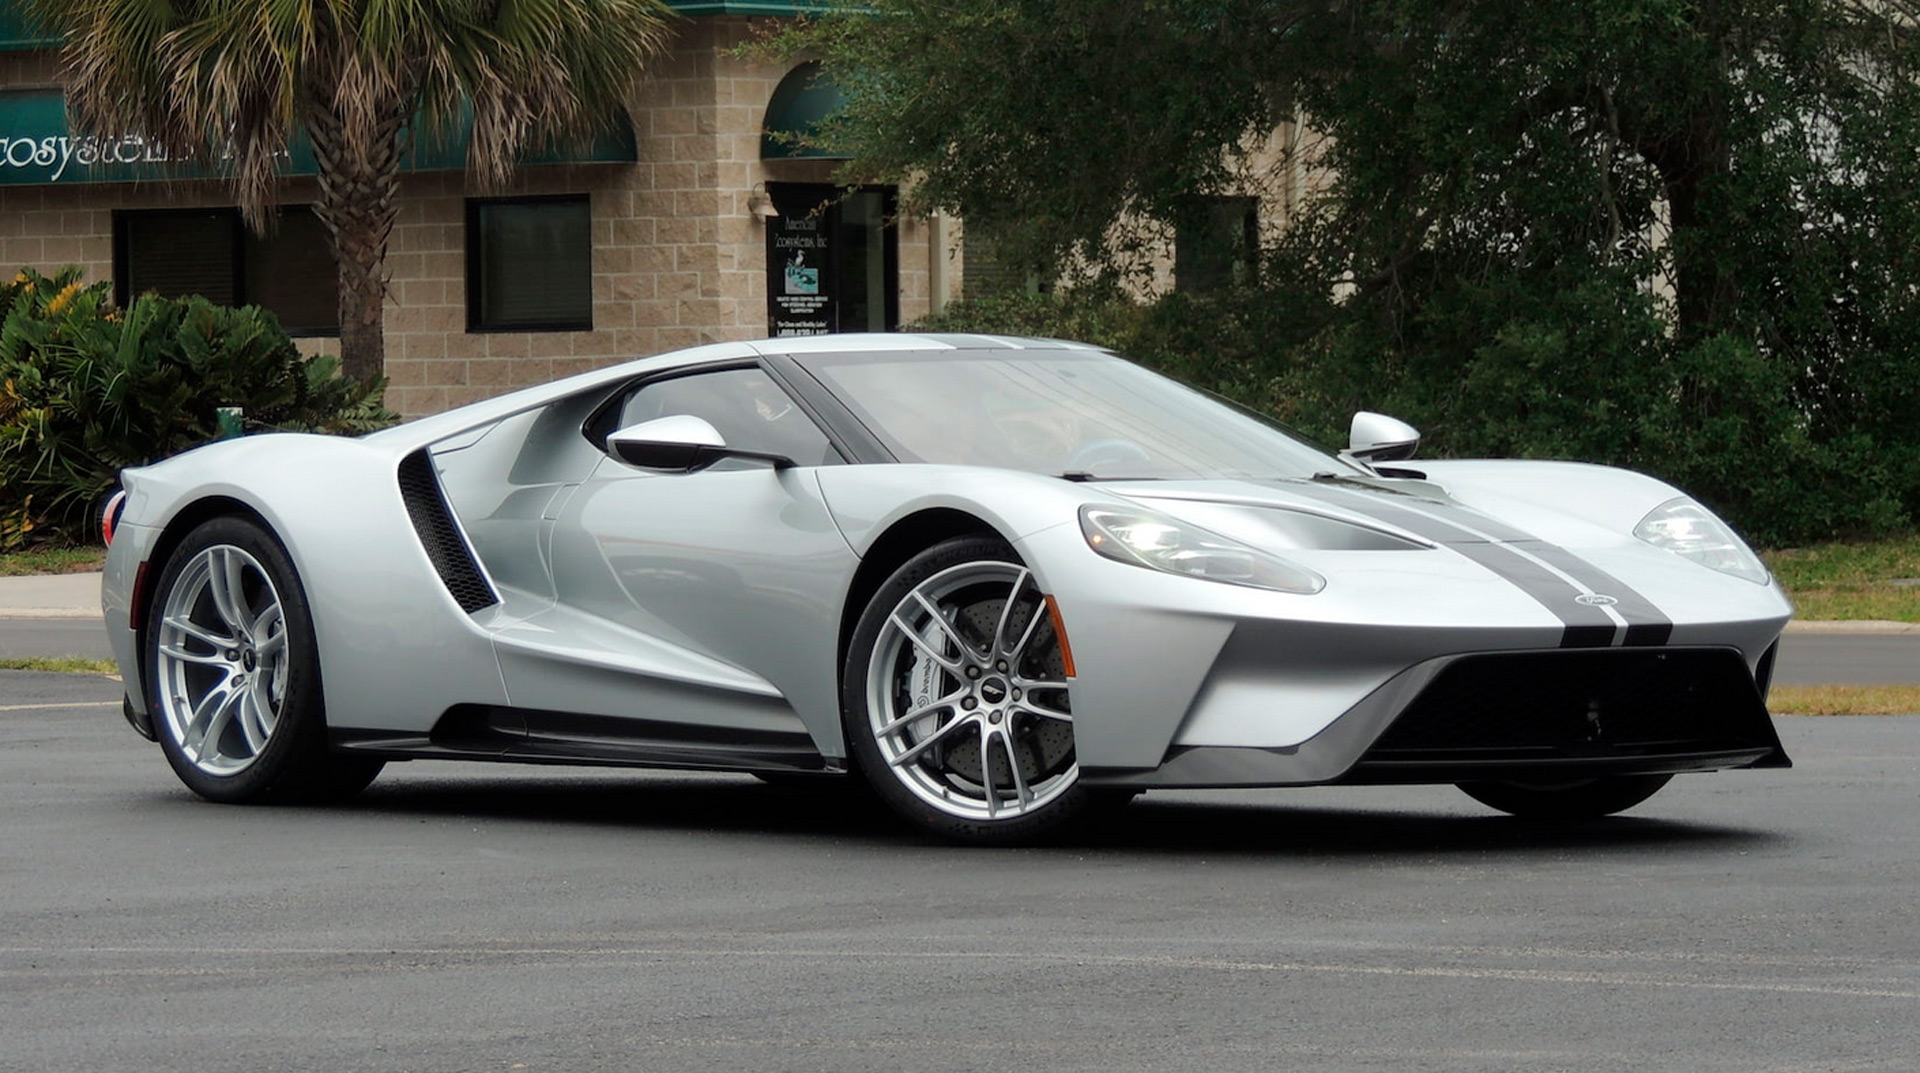 Ford Ford Auction >> Ford Missed Chance To Stop Sale Of Gt Sold For 1 8m At Auction